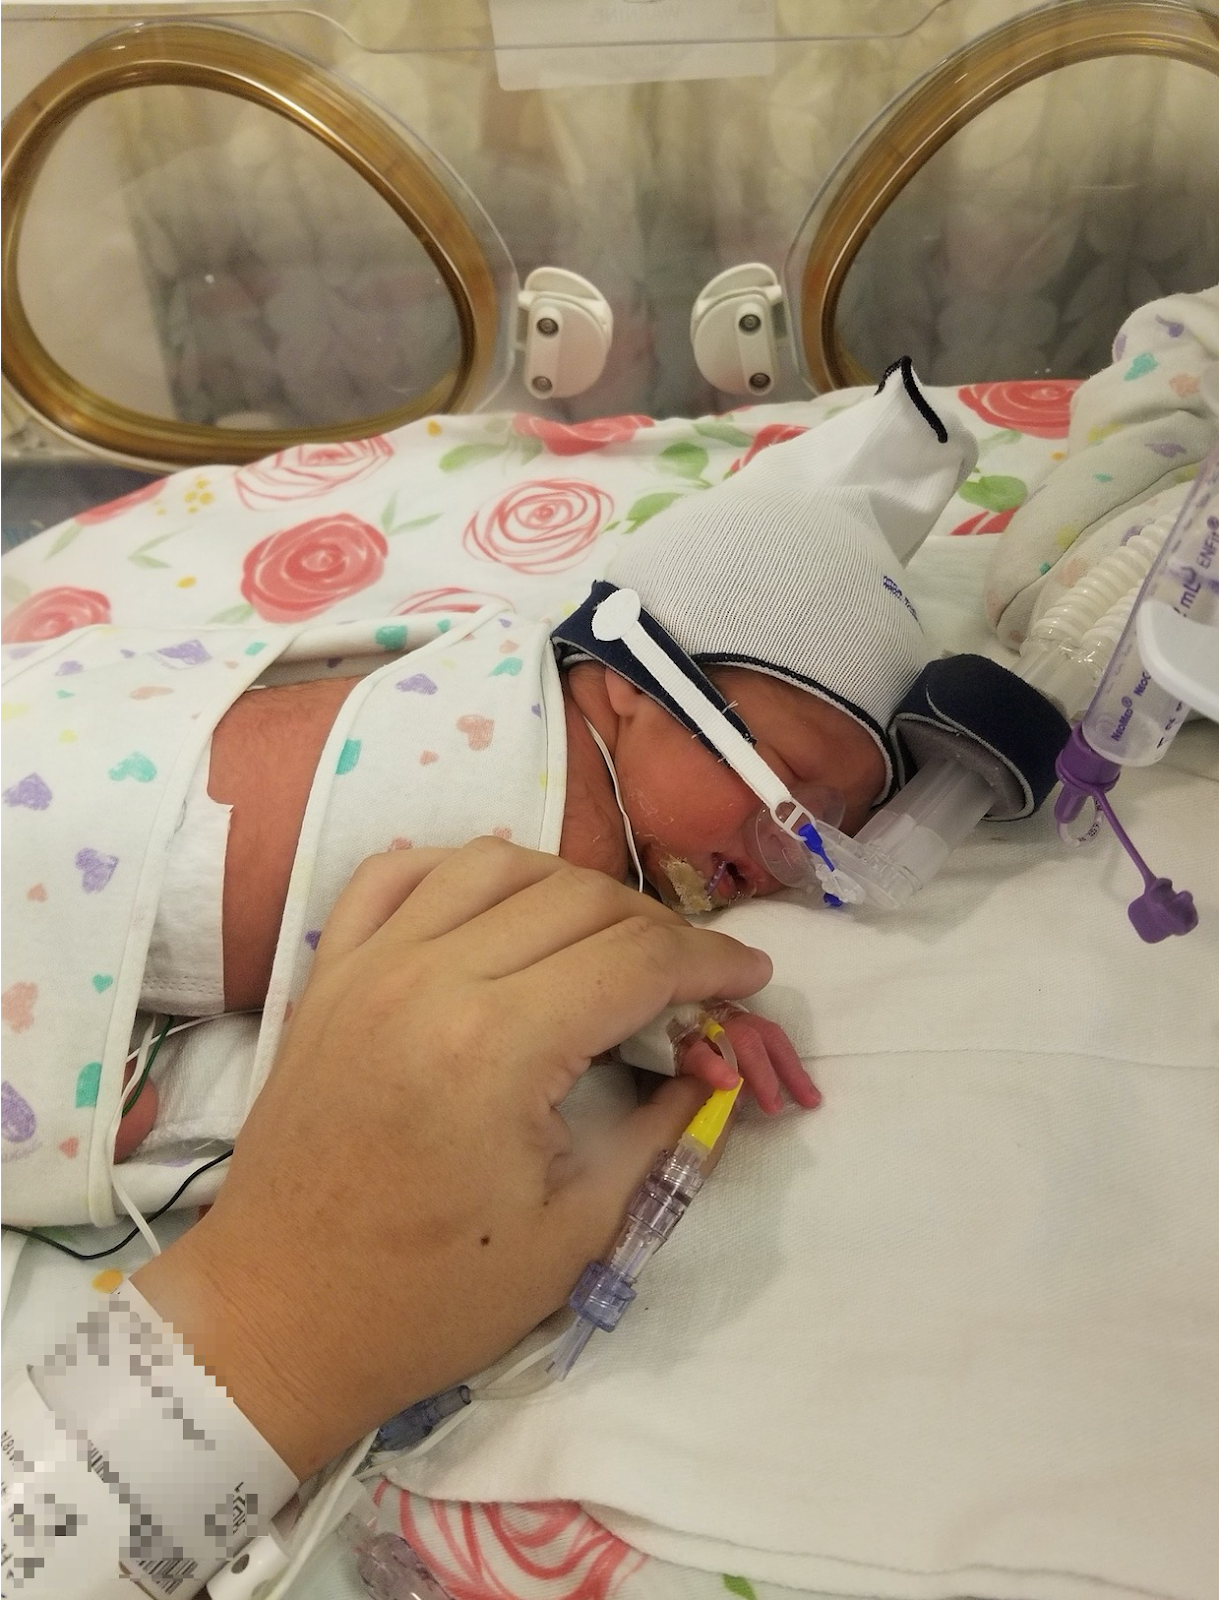 Maile Waite's baby Hailey in the NICU